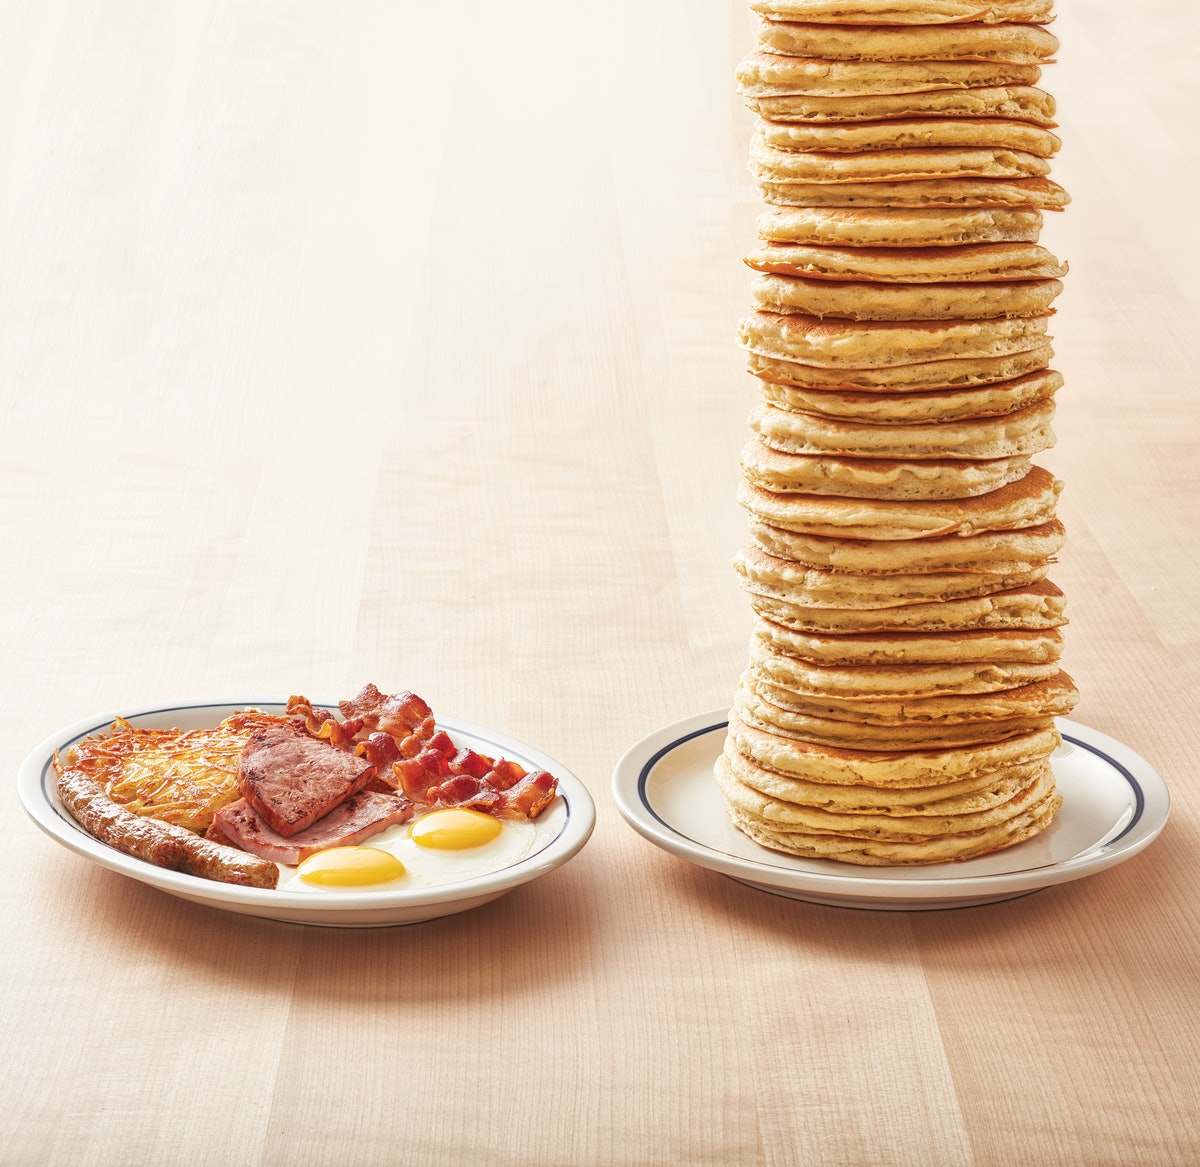 IHOP's All You Can Eat Pancakes For 2020 will save you cash, withot skimping on the portions.